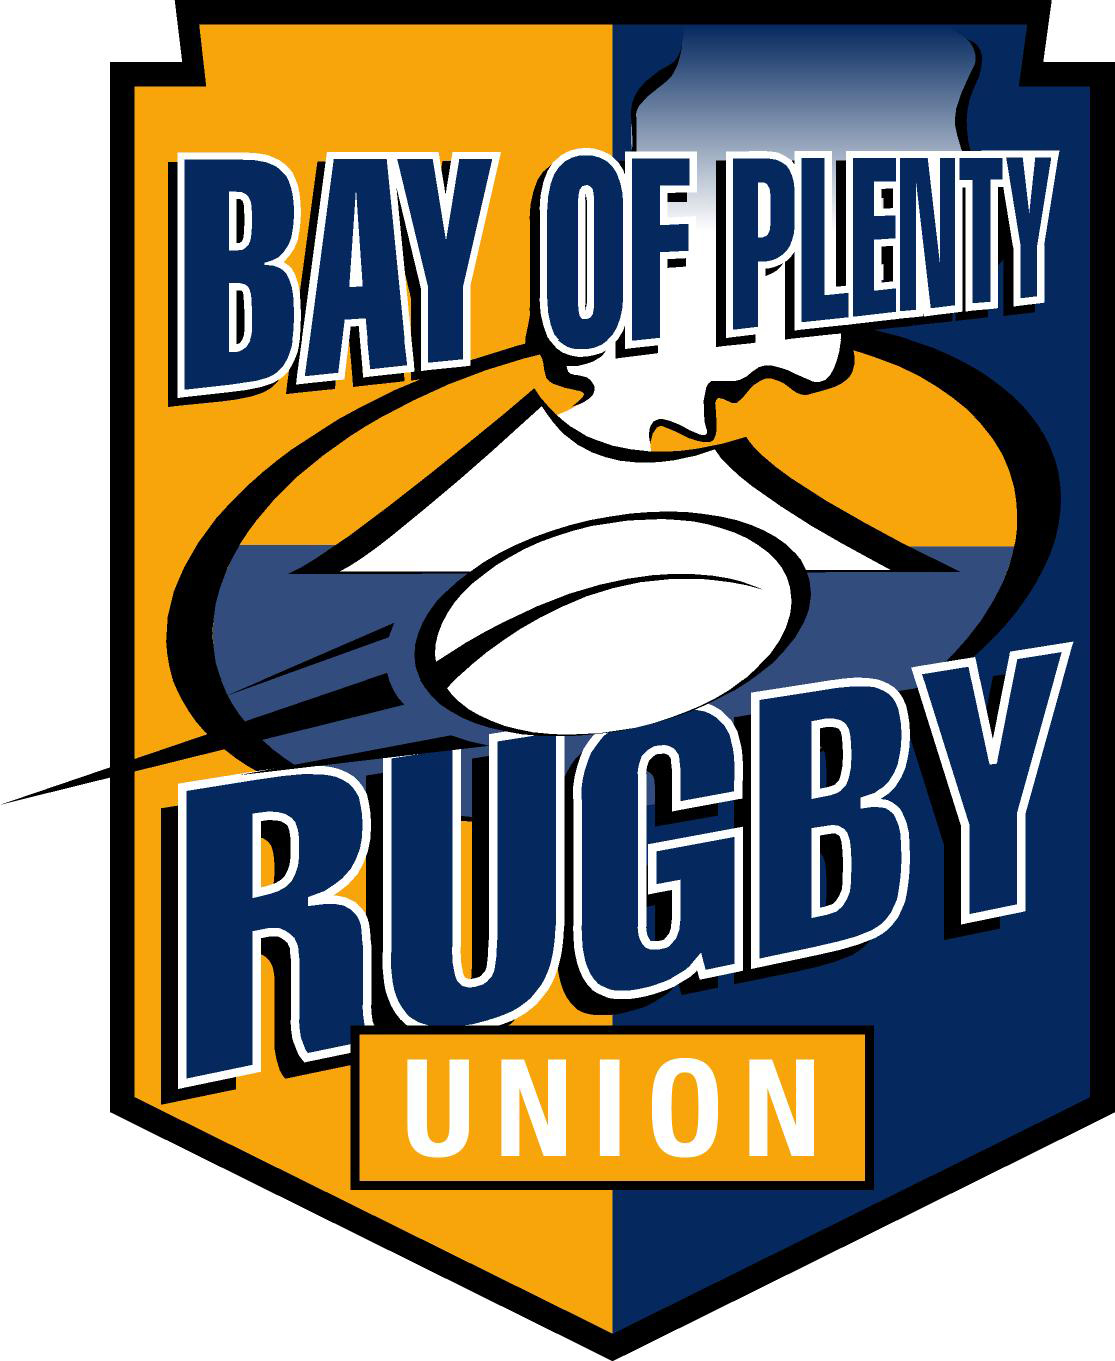 Bay of Plenty Rugby